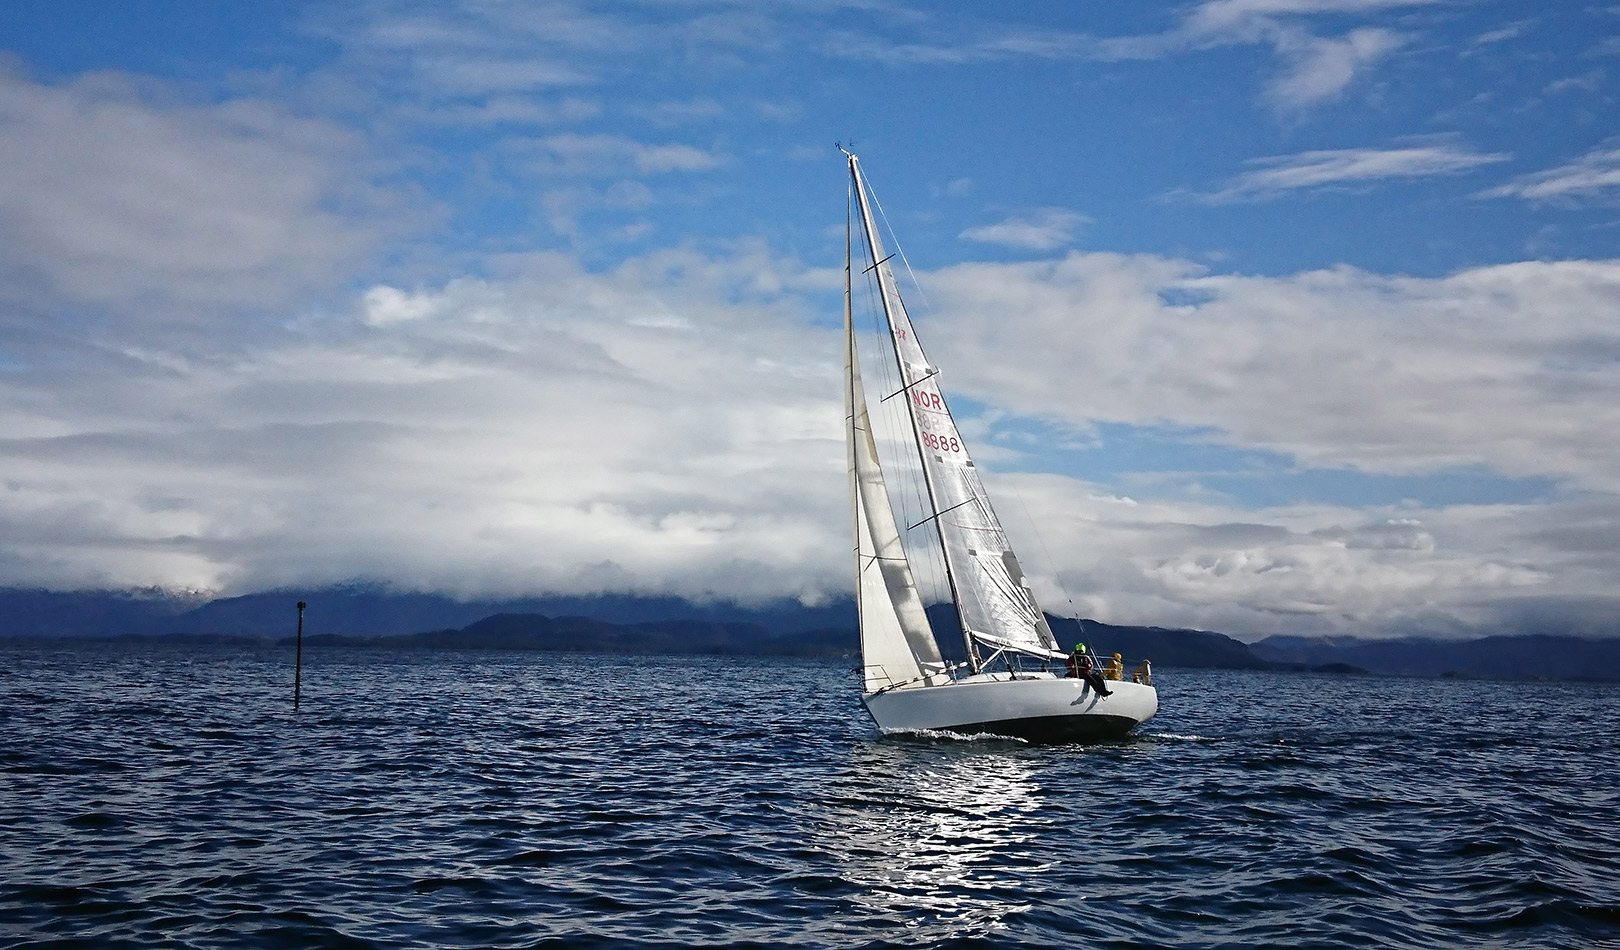 Sail boat on the ocean.